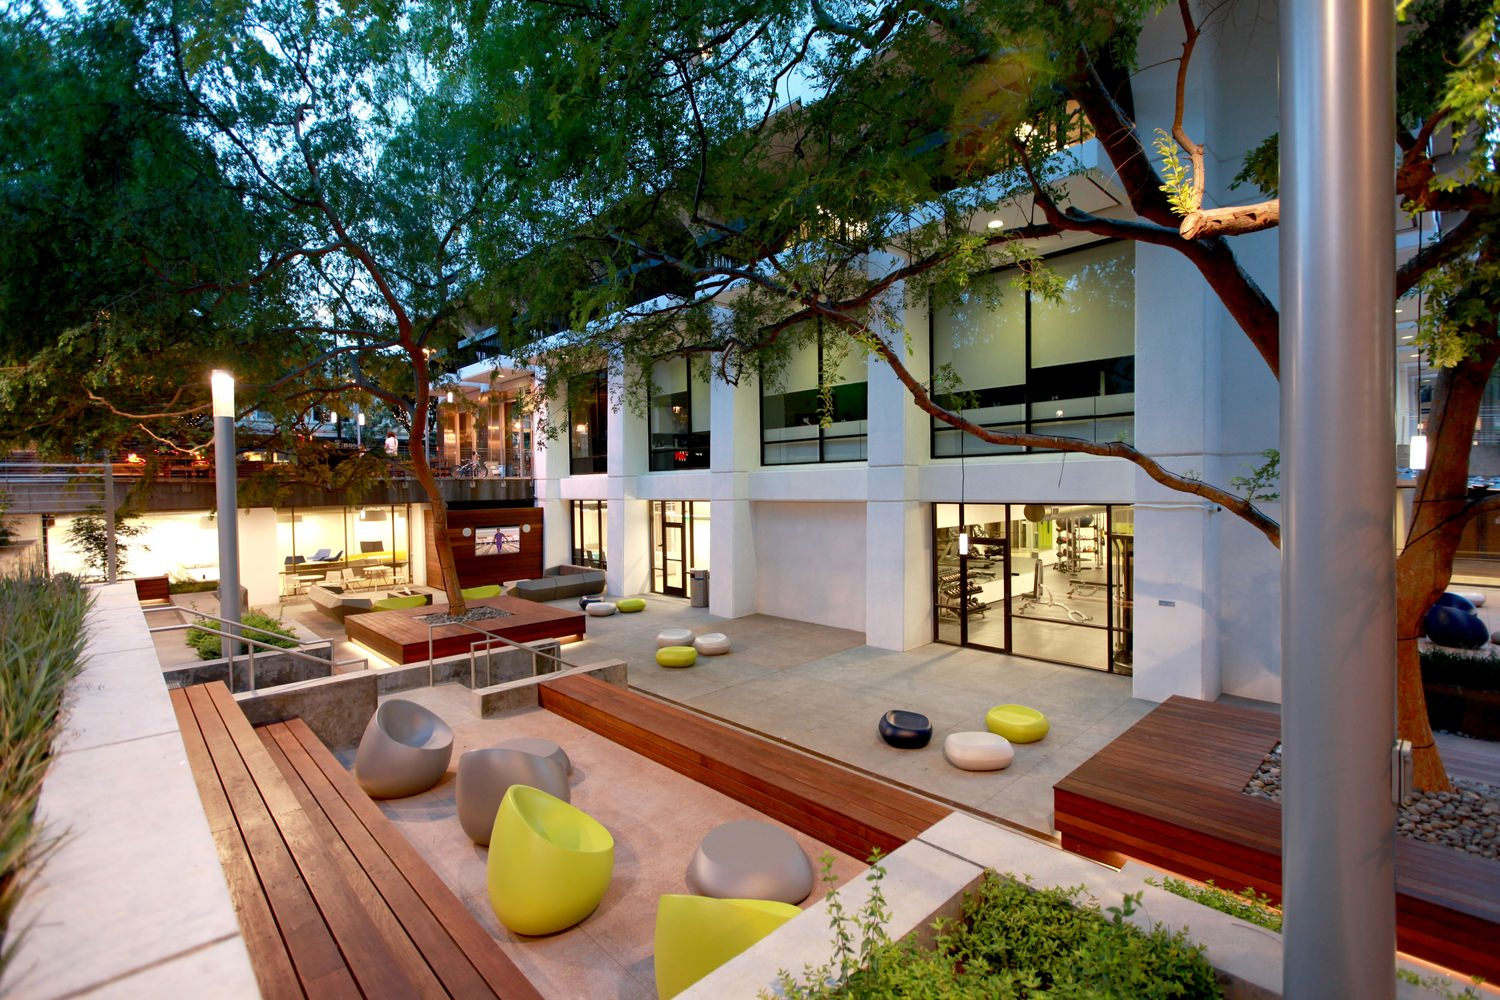 A white building with a courtyard that is full of trees and outdoor furniture along the area.